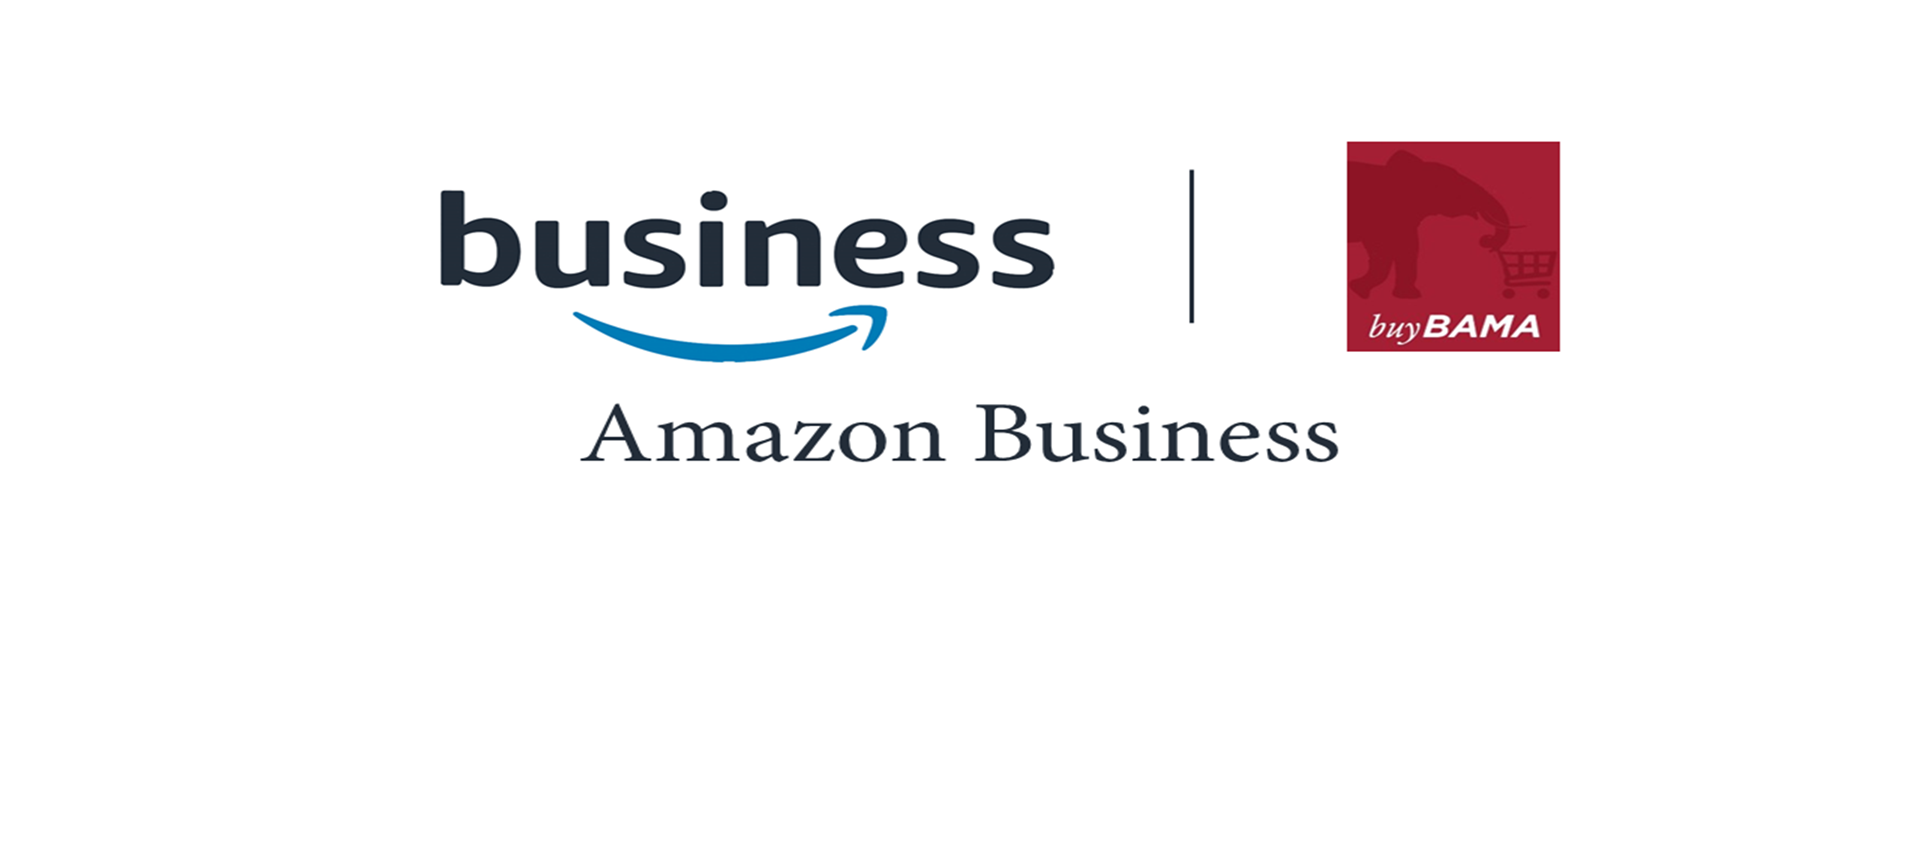 Amazon Business Now Available on buyBAMA